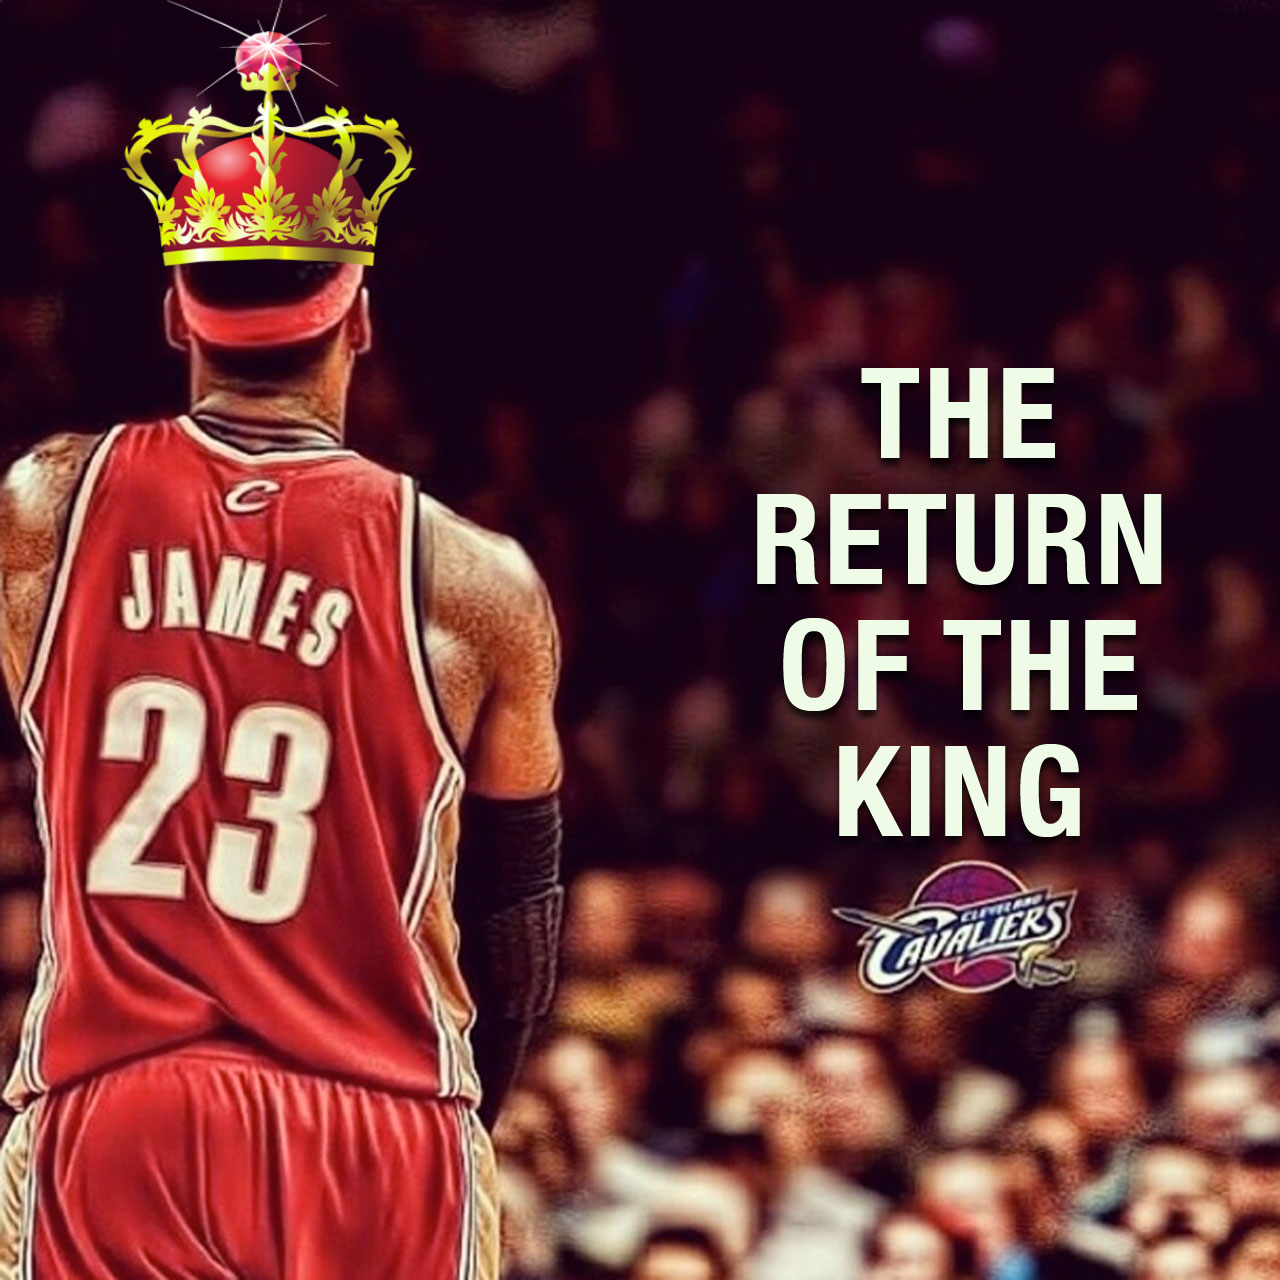 LeBron James is coming home to the Cleveland Cavaliers